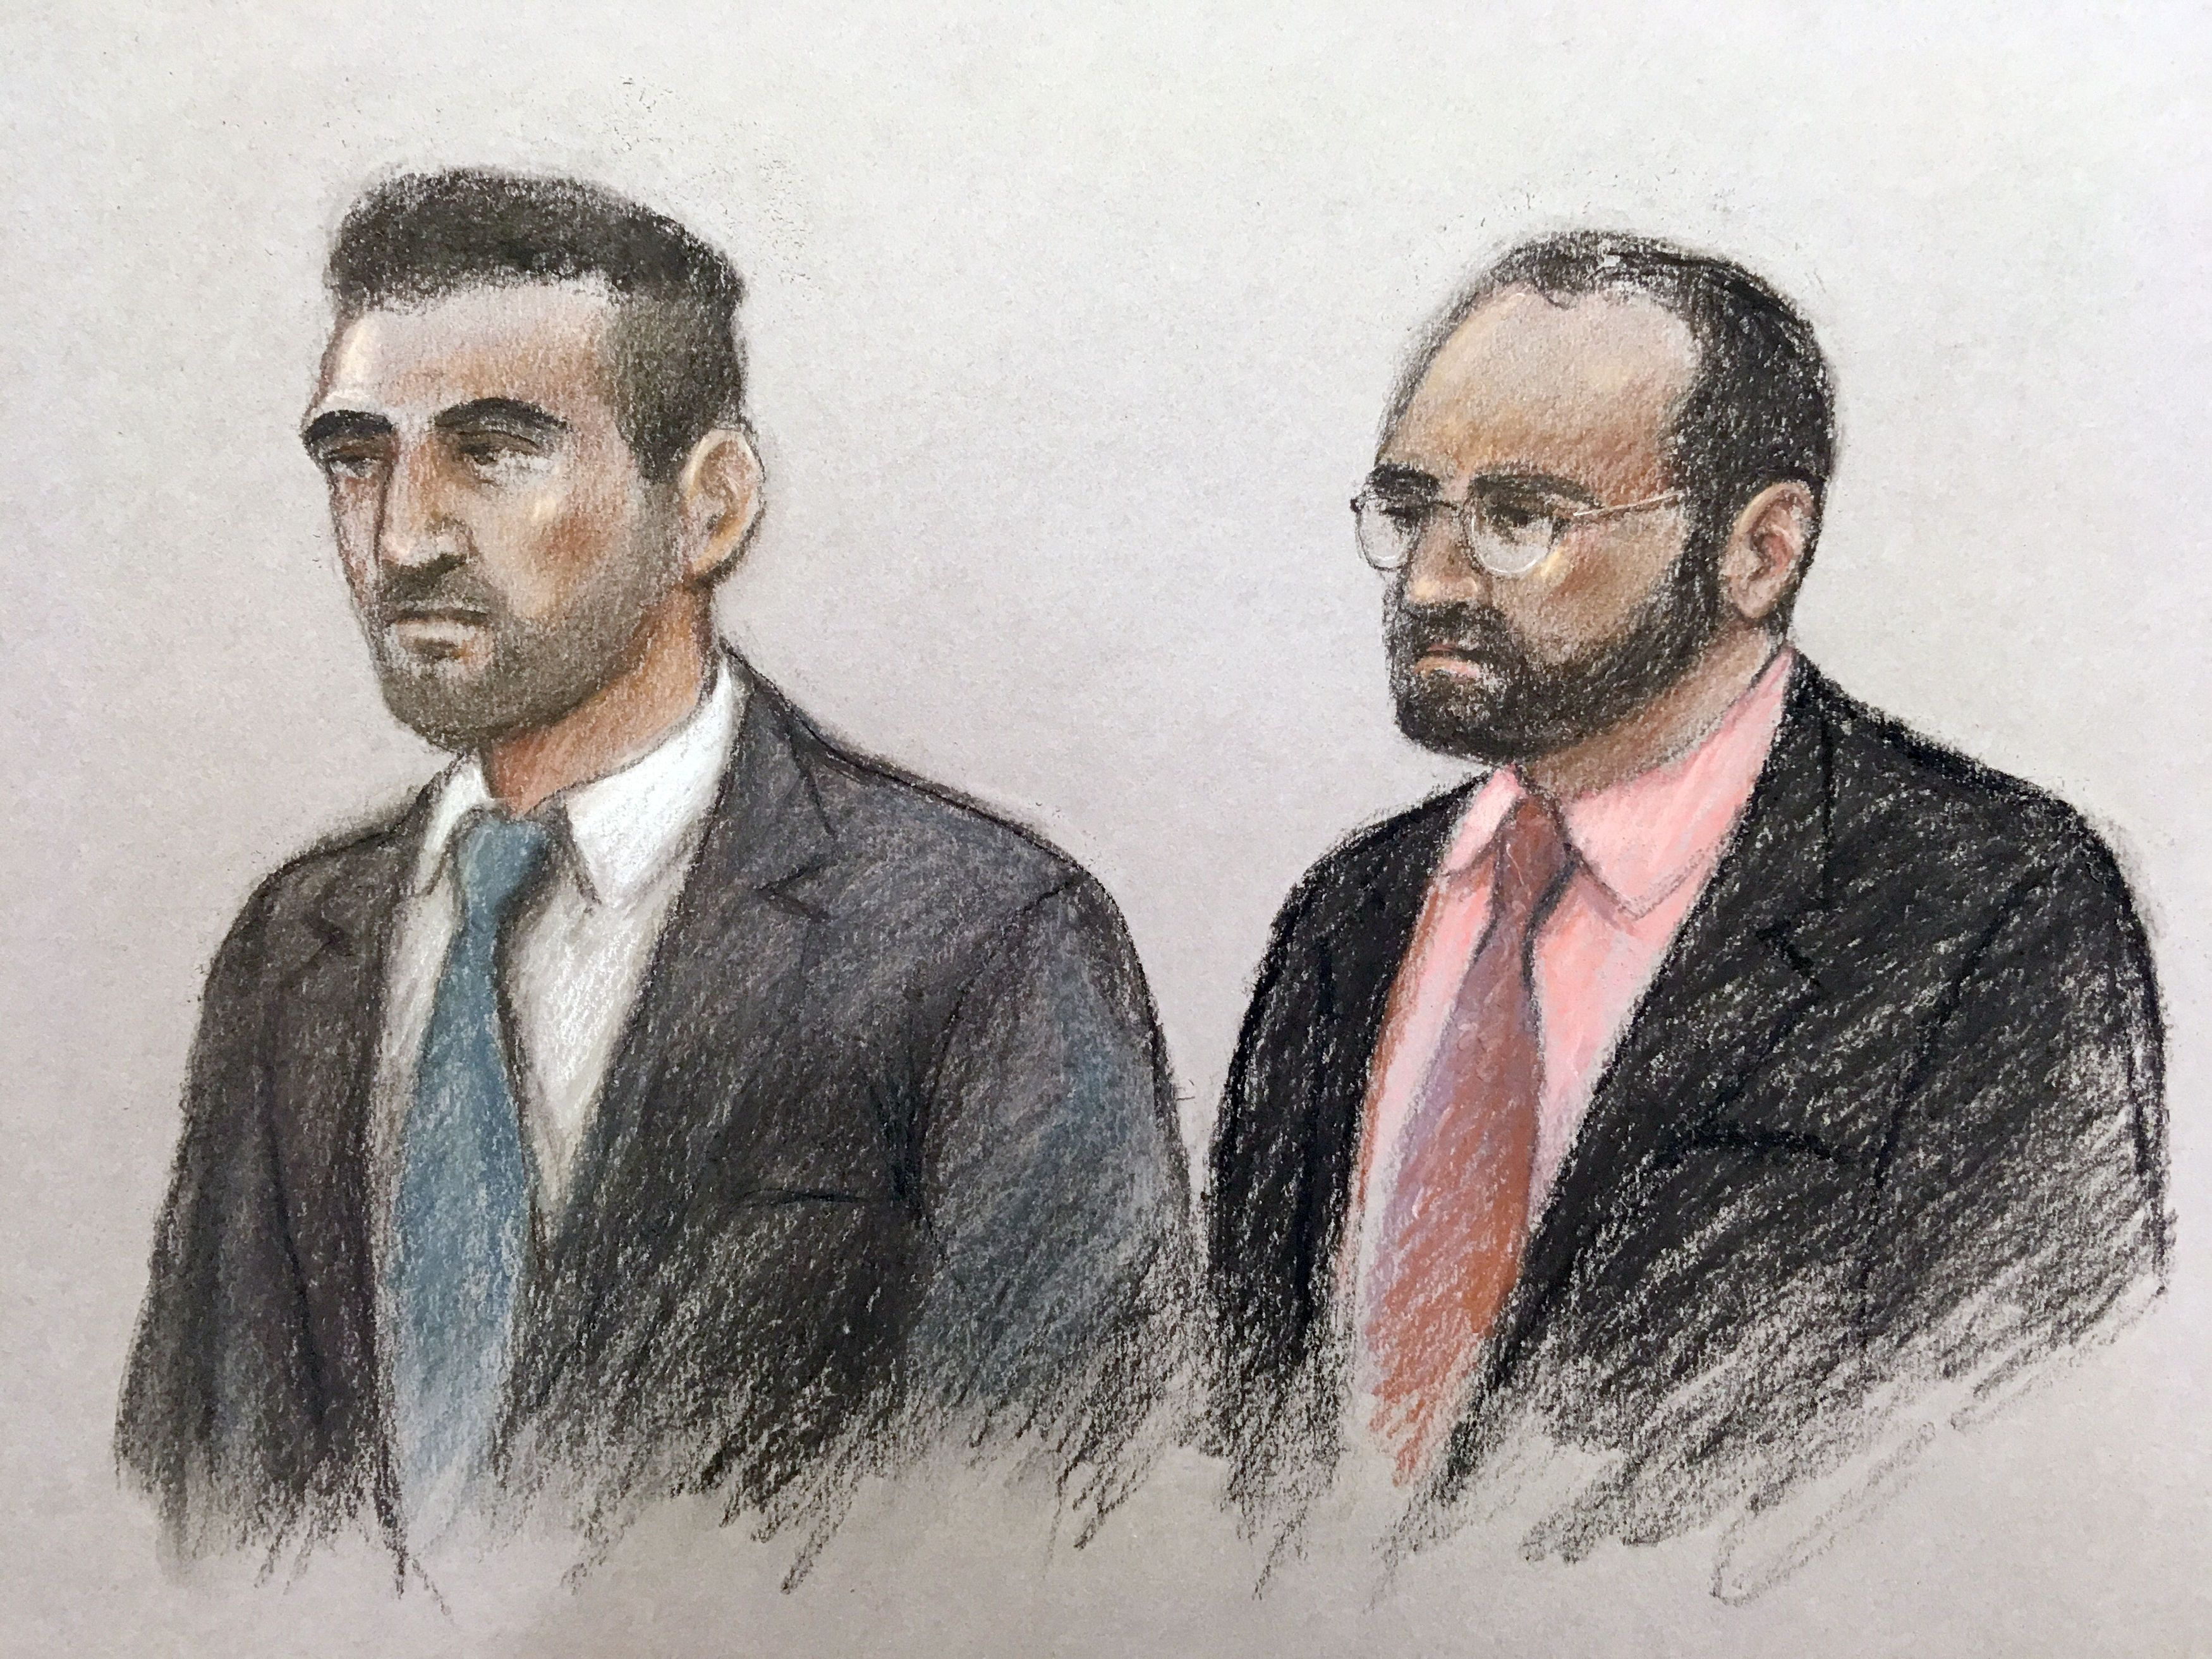 <strong>Court artist sketch of Vincent Tappu (left) and Mujahid Arshid in the dock of the Old Bailey.</strong>